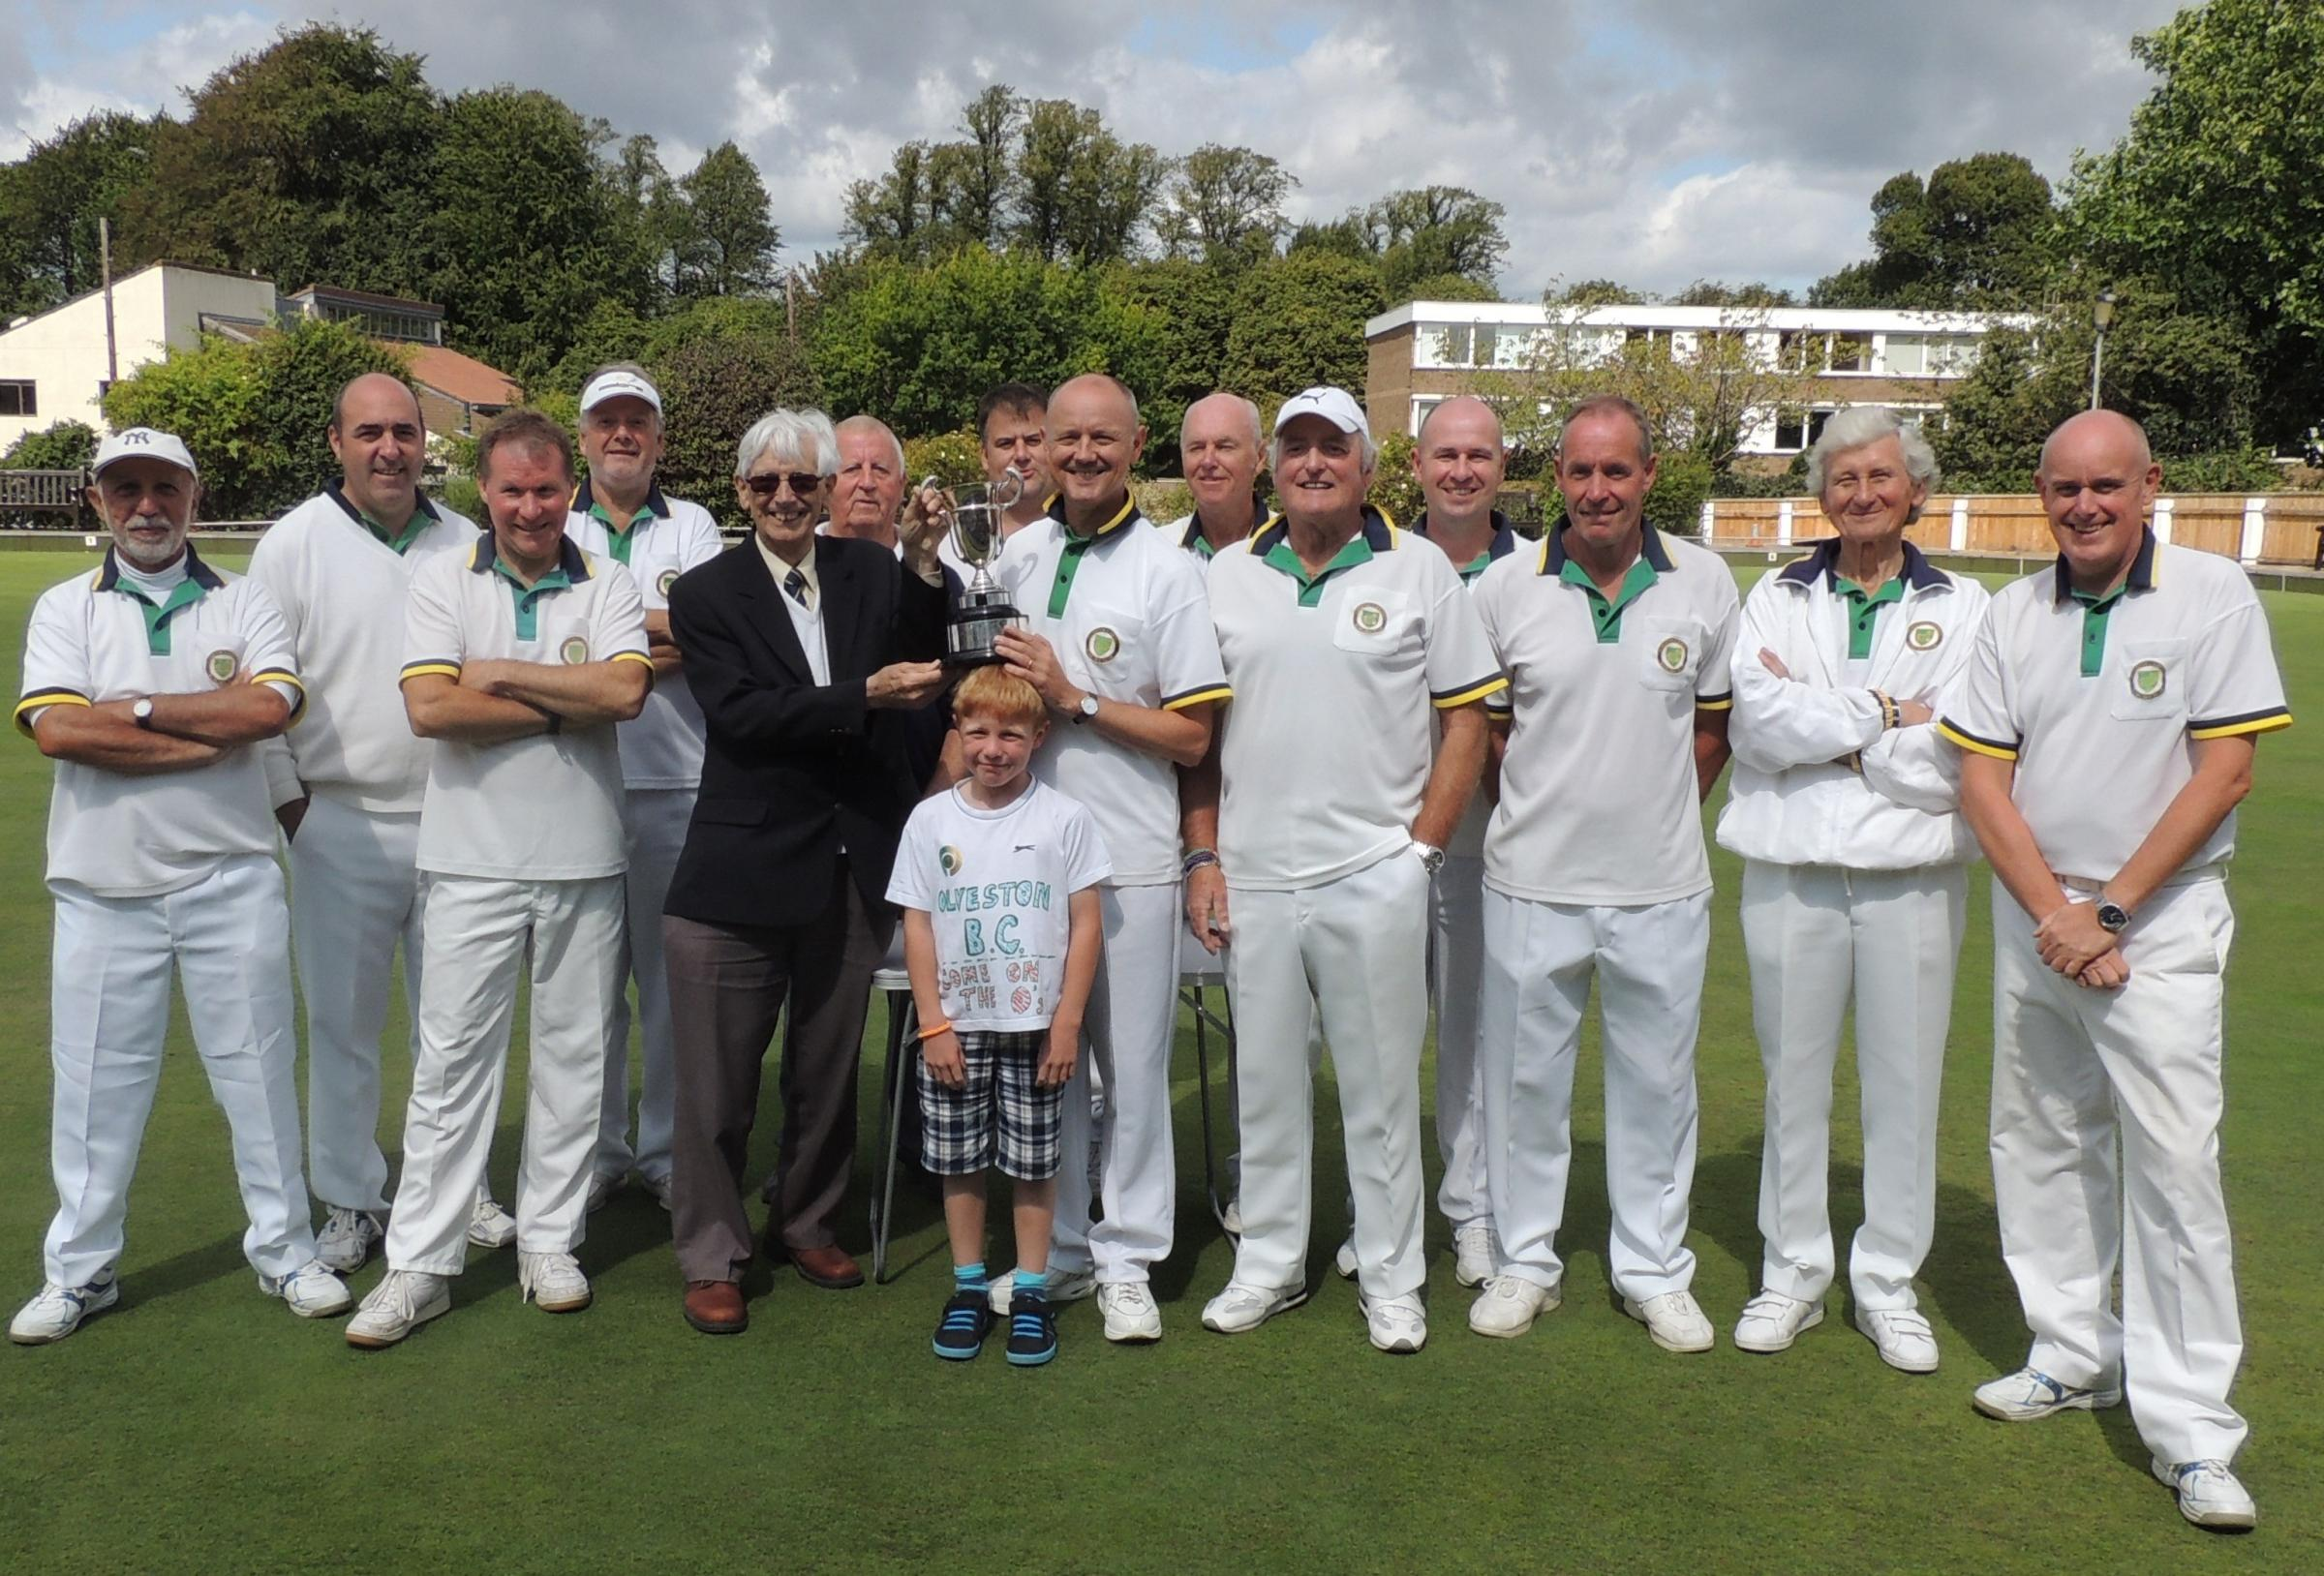 Olveston & District Bowling Club winning team being presented with the Lloyd Trophy